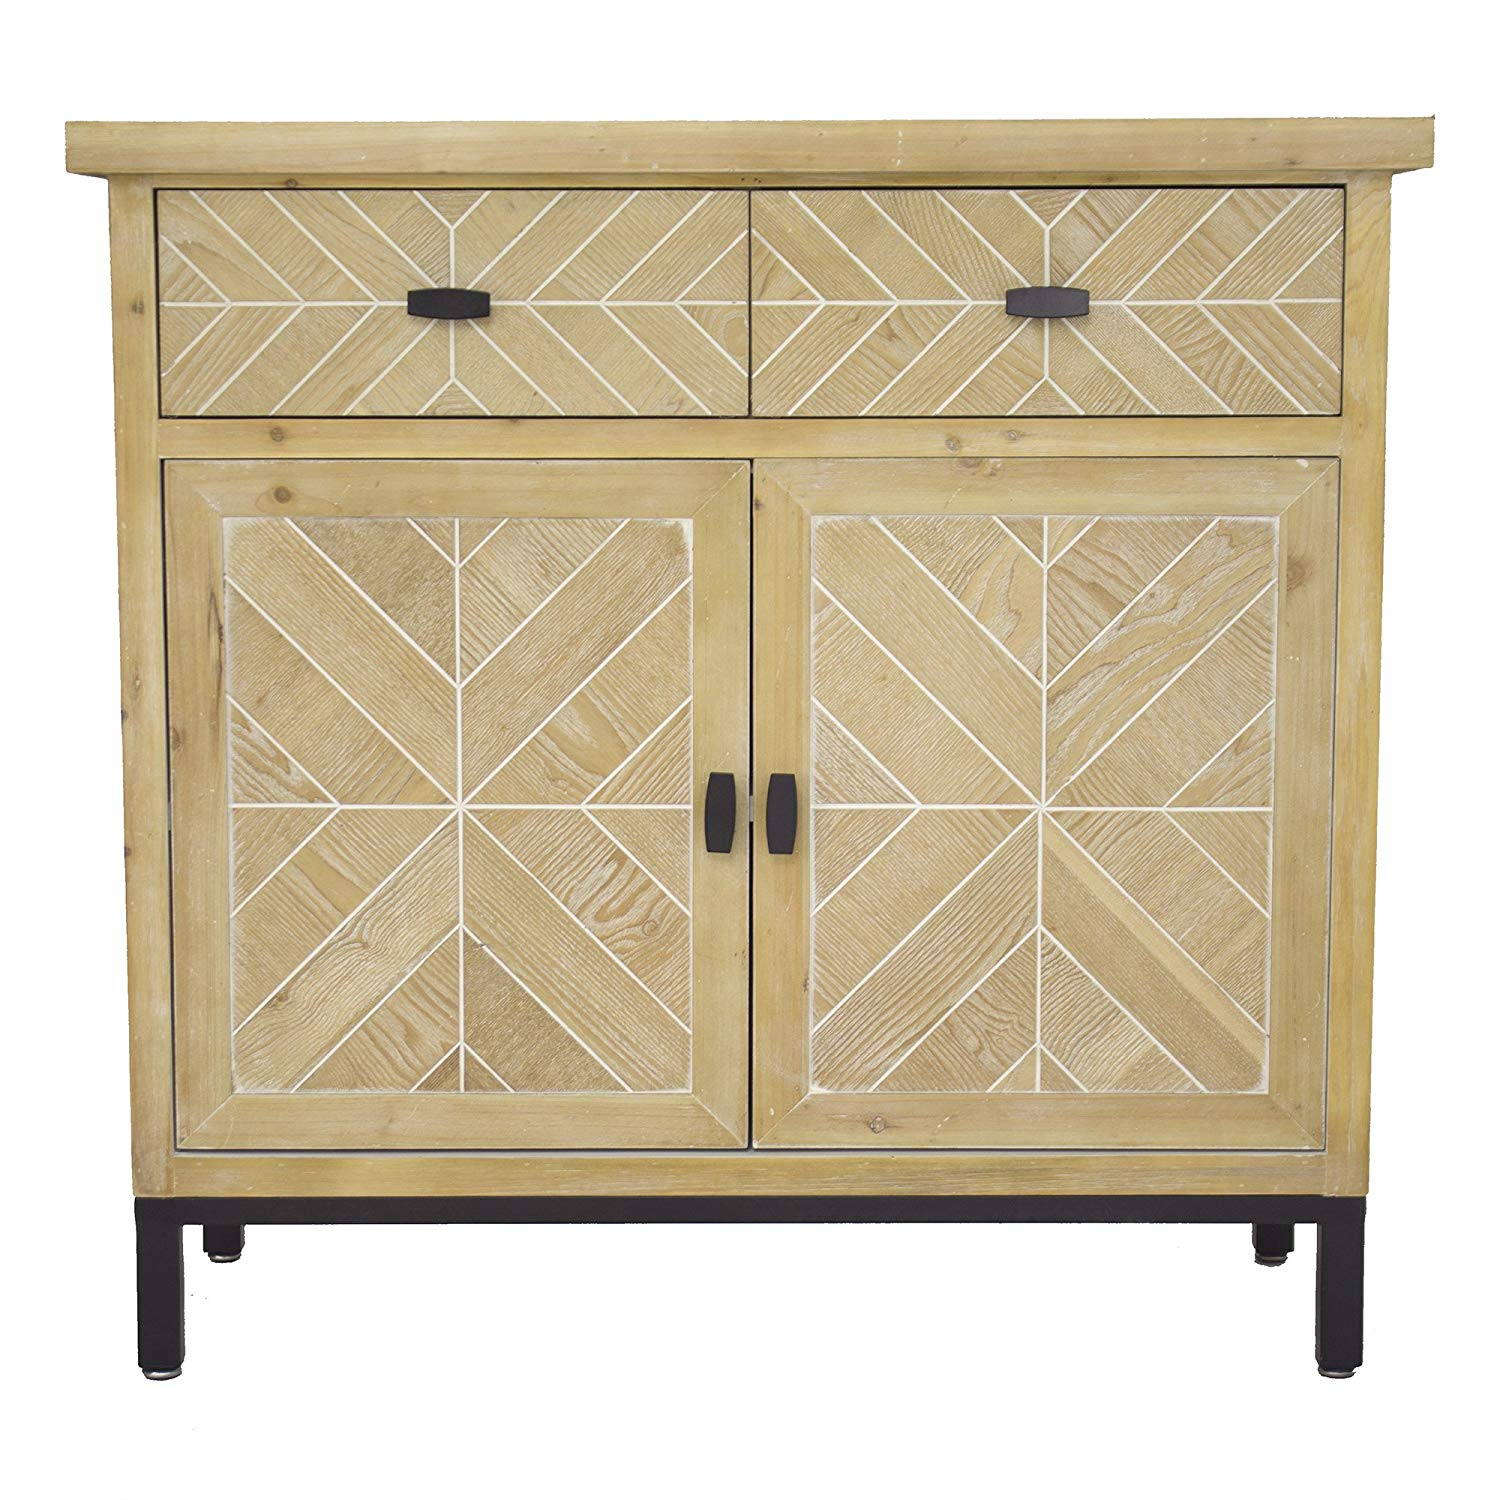 heather ann creations wwp urban drawer door parquet accent table target sideboard white washed kitchen dining barn cabinet pier and chairs dale tiffany lamps turquoise coffee